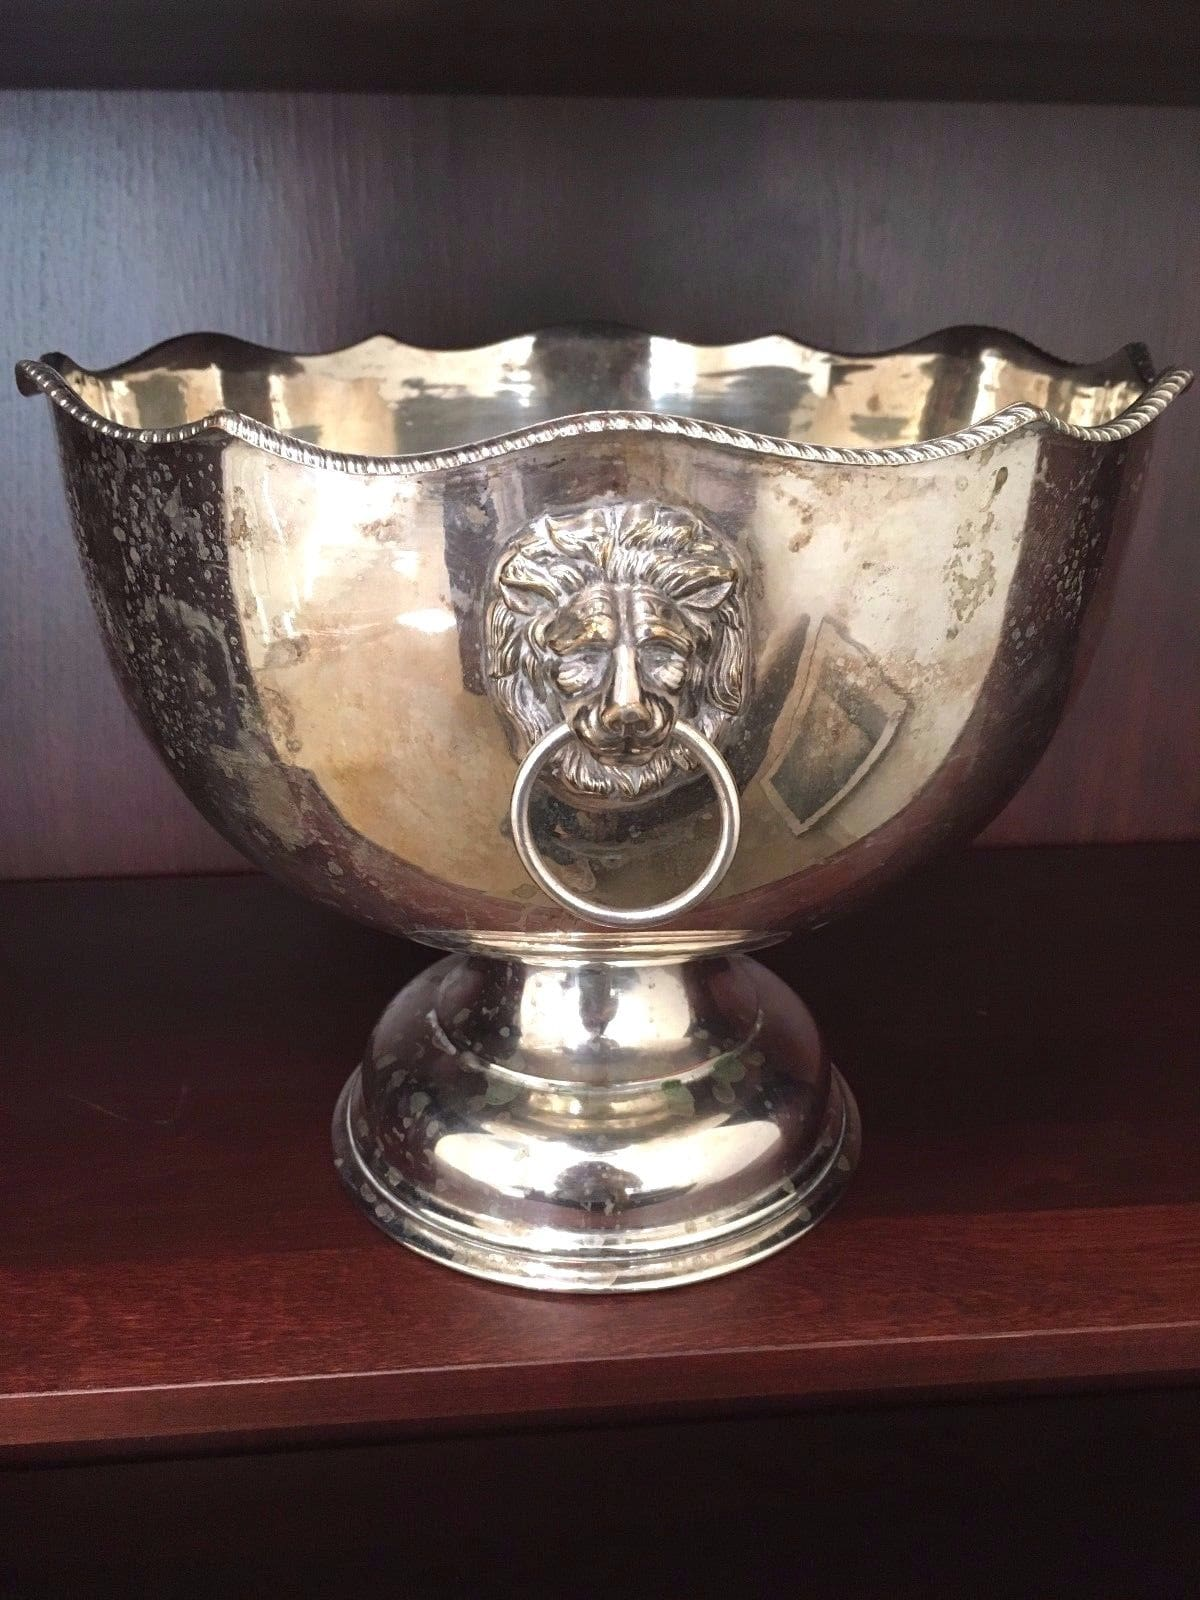 Vintage Punch Bowl - Silver on Copper - Ornate Lion's Head Handles